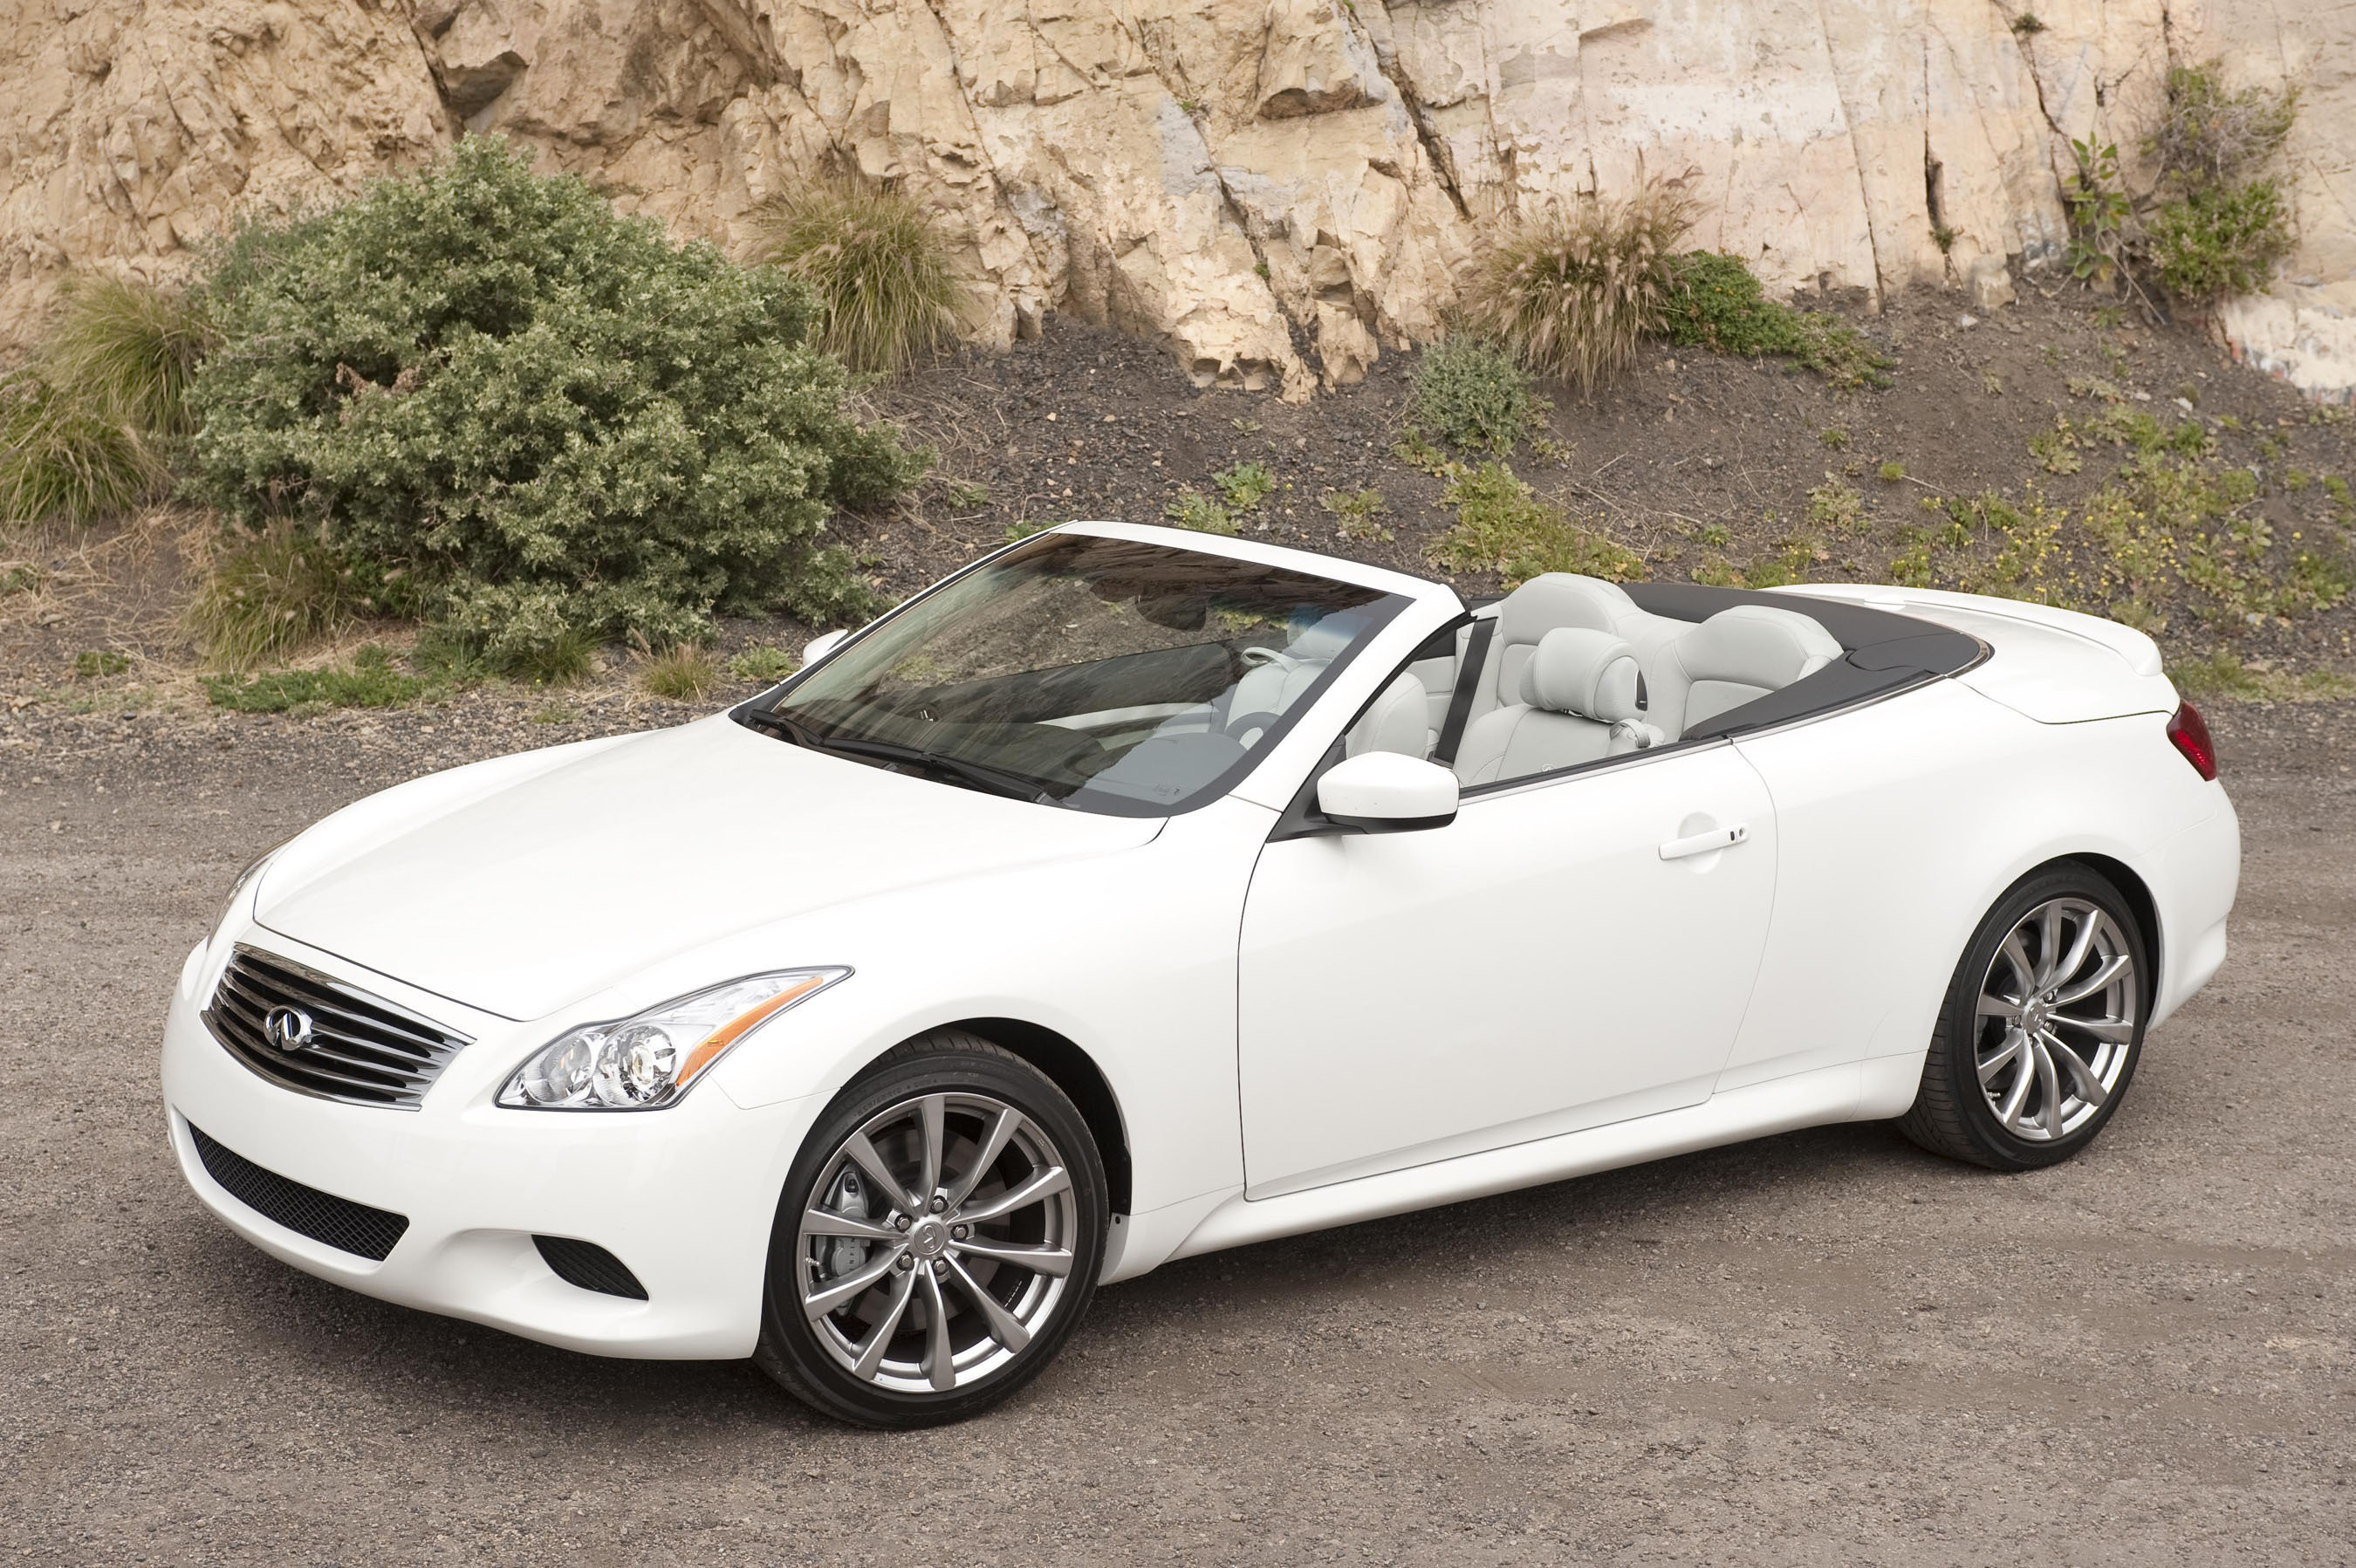 2015 infiniti g37 convertible pictures information and specs auto. Black Bedroom Furniture Sets. Home Design Ideas